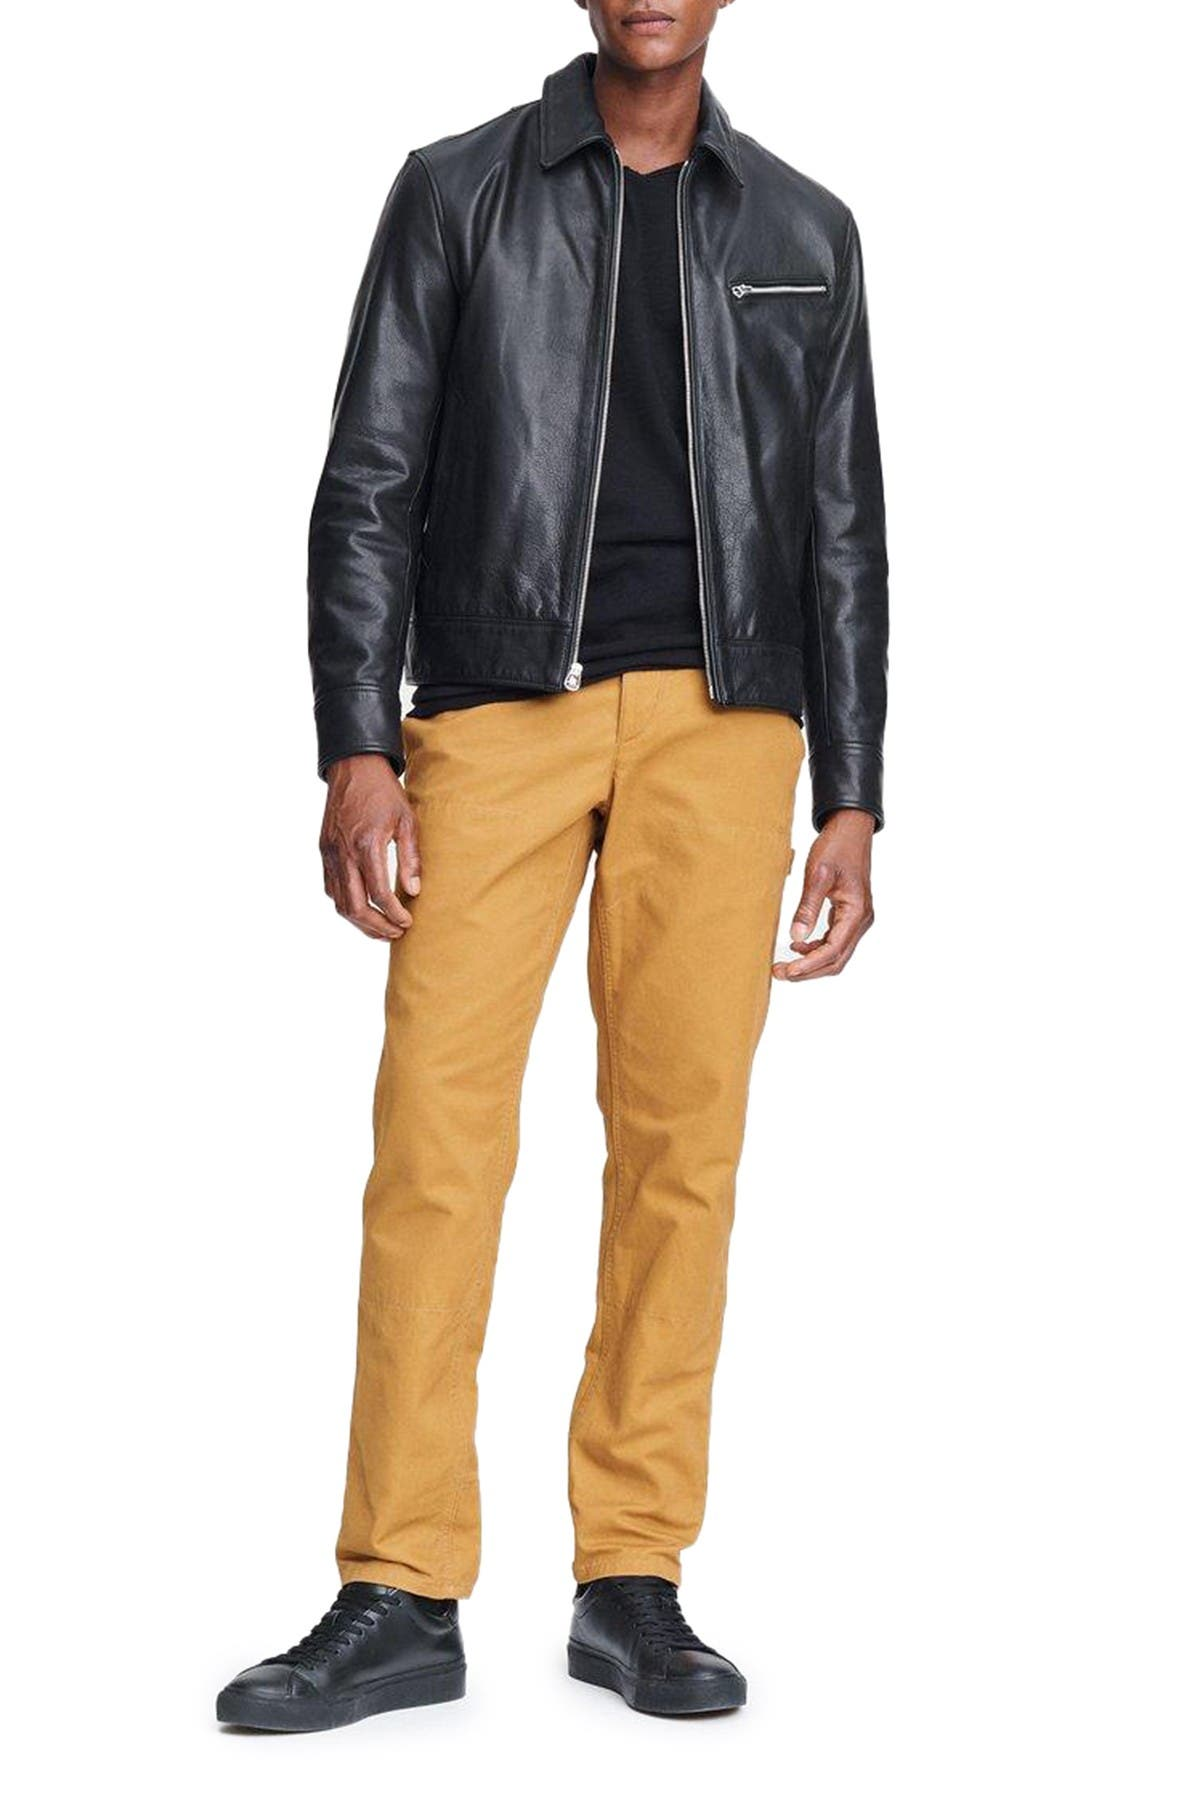 Image of Rag & Bone Chore Chino Pants